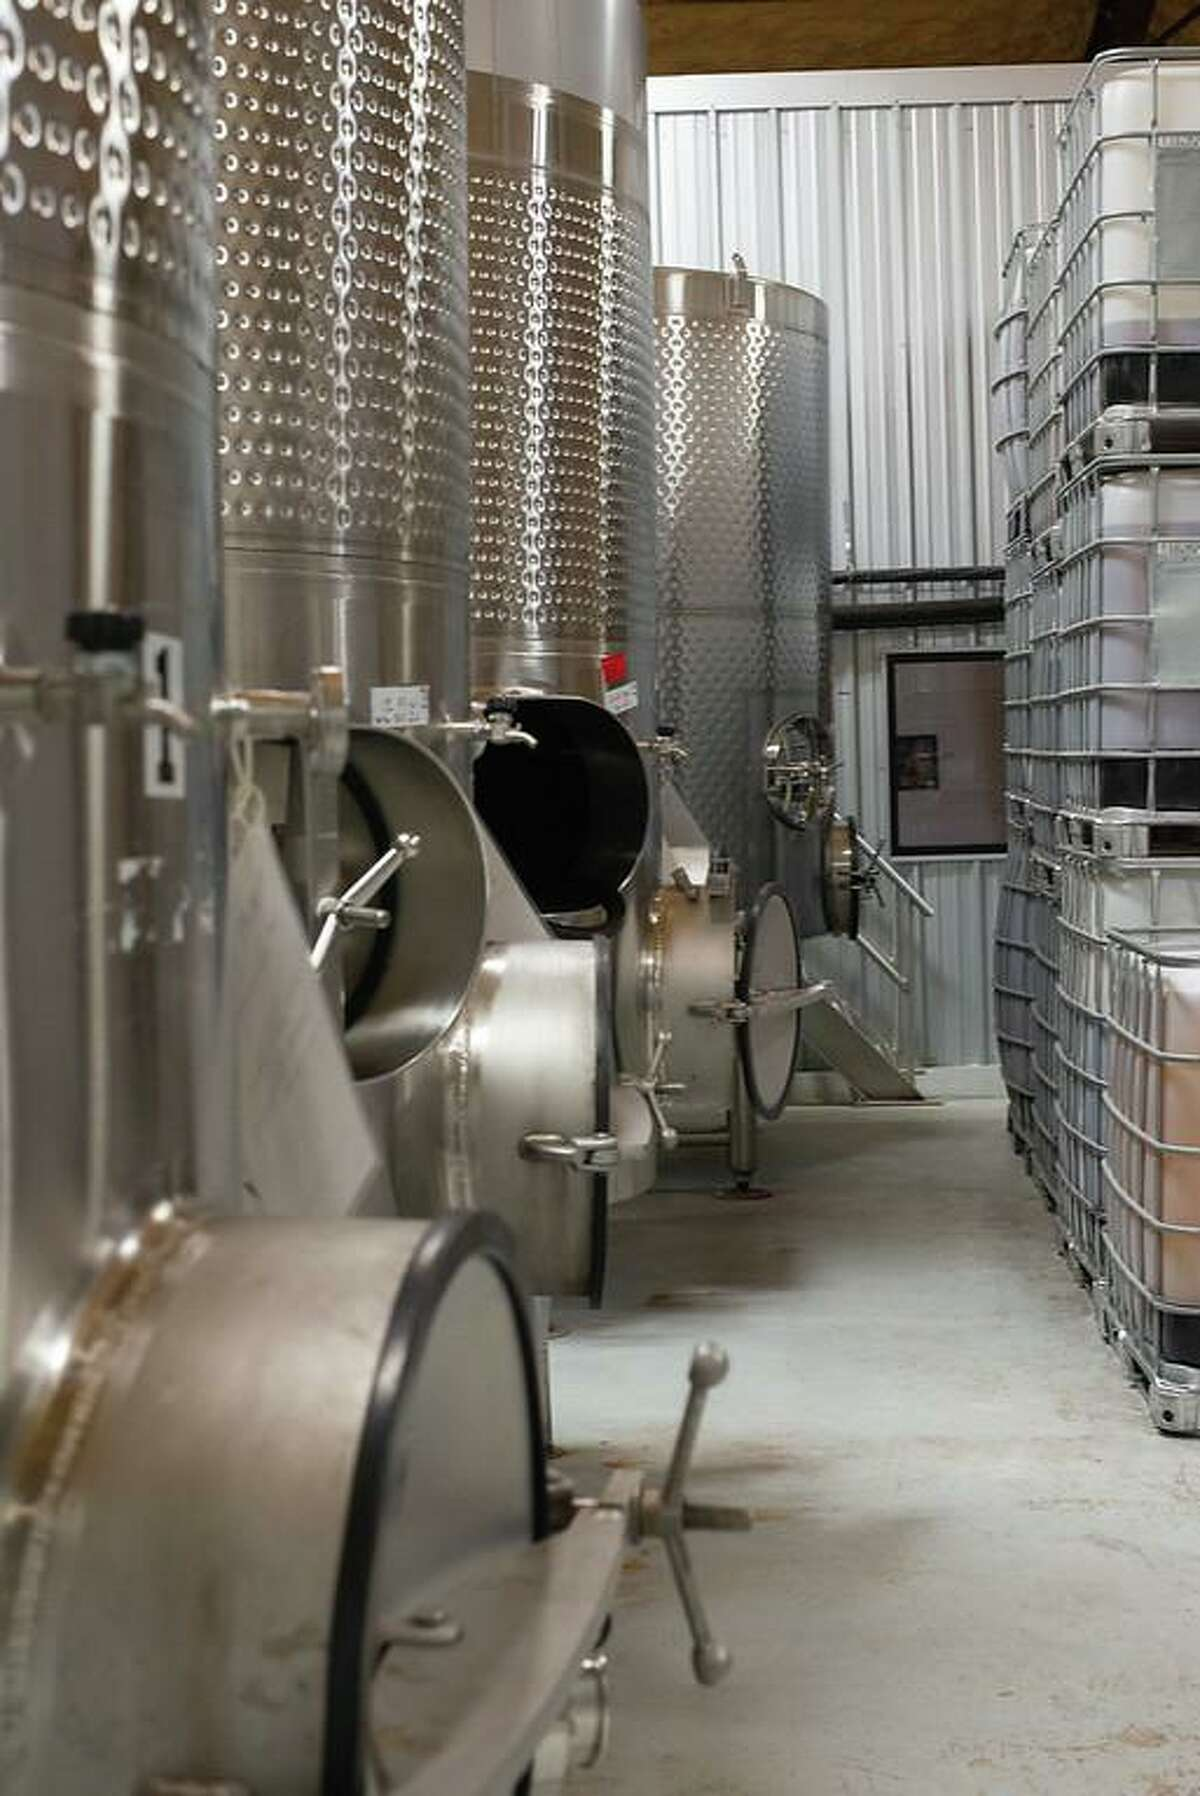 Kerrville Hills Winery on Texas 16 between Kerrville and Fredericksburg has 30,000 gallons of fermentation tank capacity to help other wineries in their production along with the special handcrafted Kerrville Hills Winery Wines.